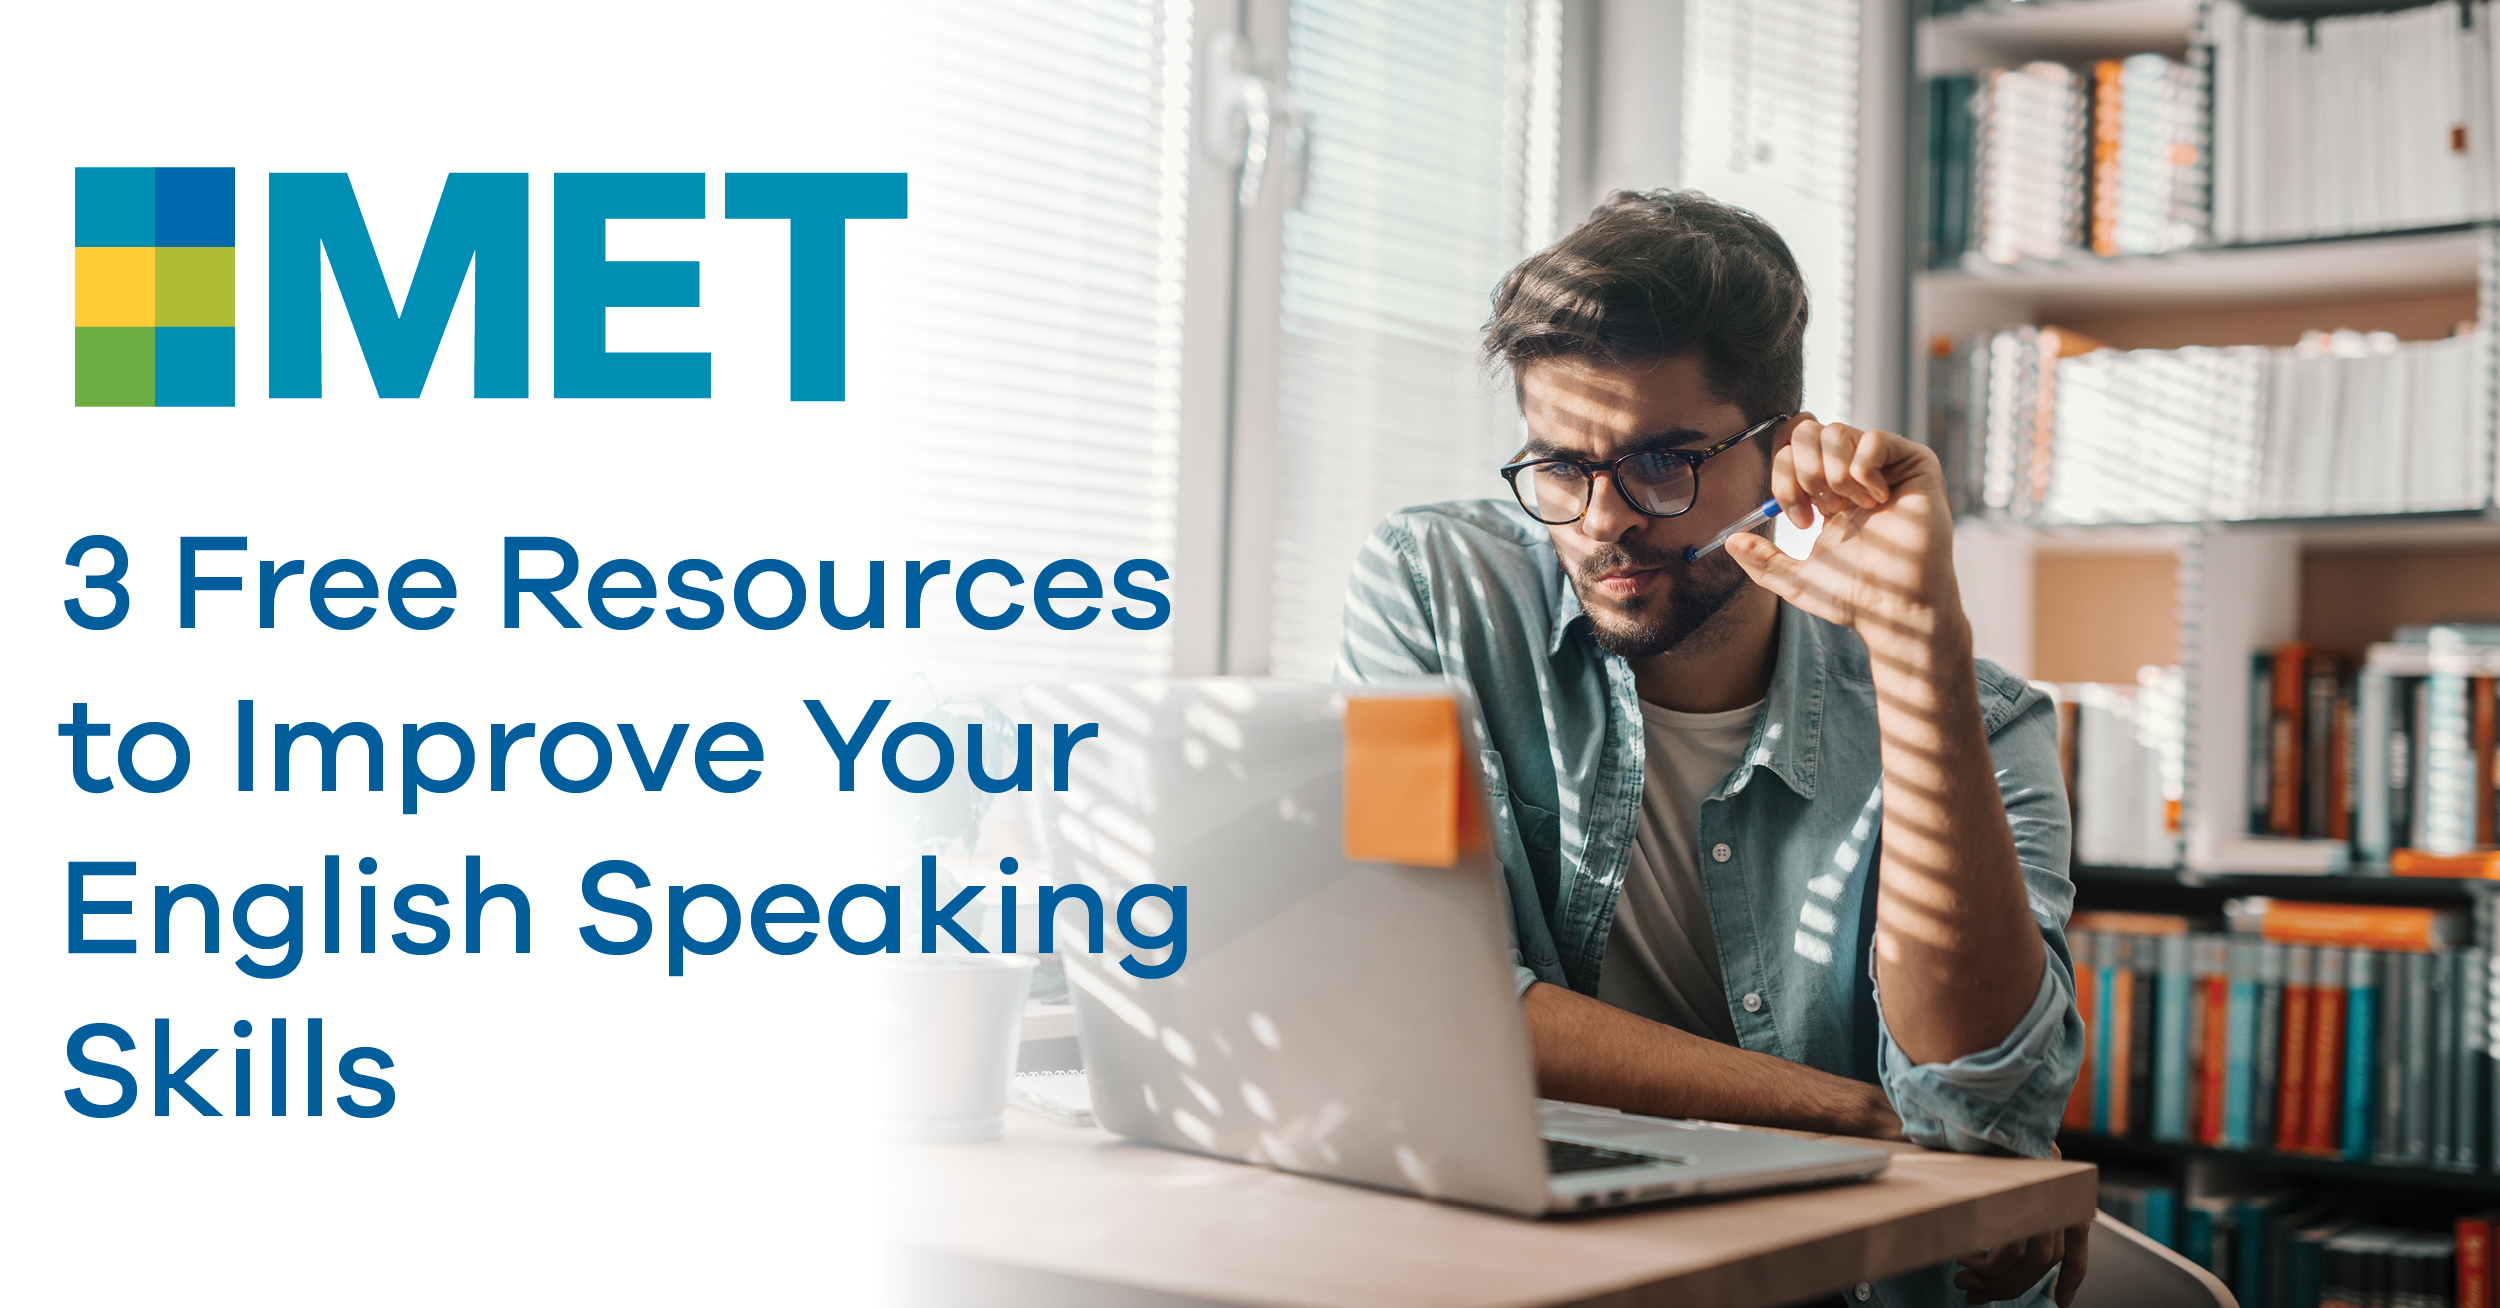 3 Free Resources to Improve Your English Speaking Skills